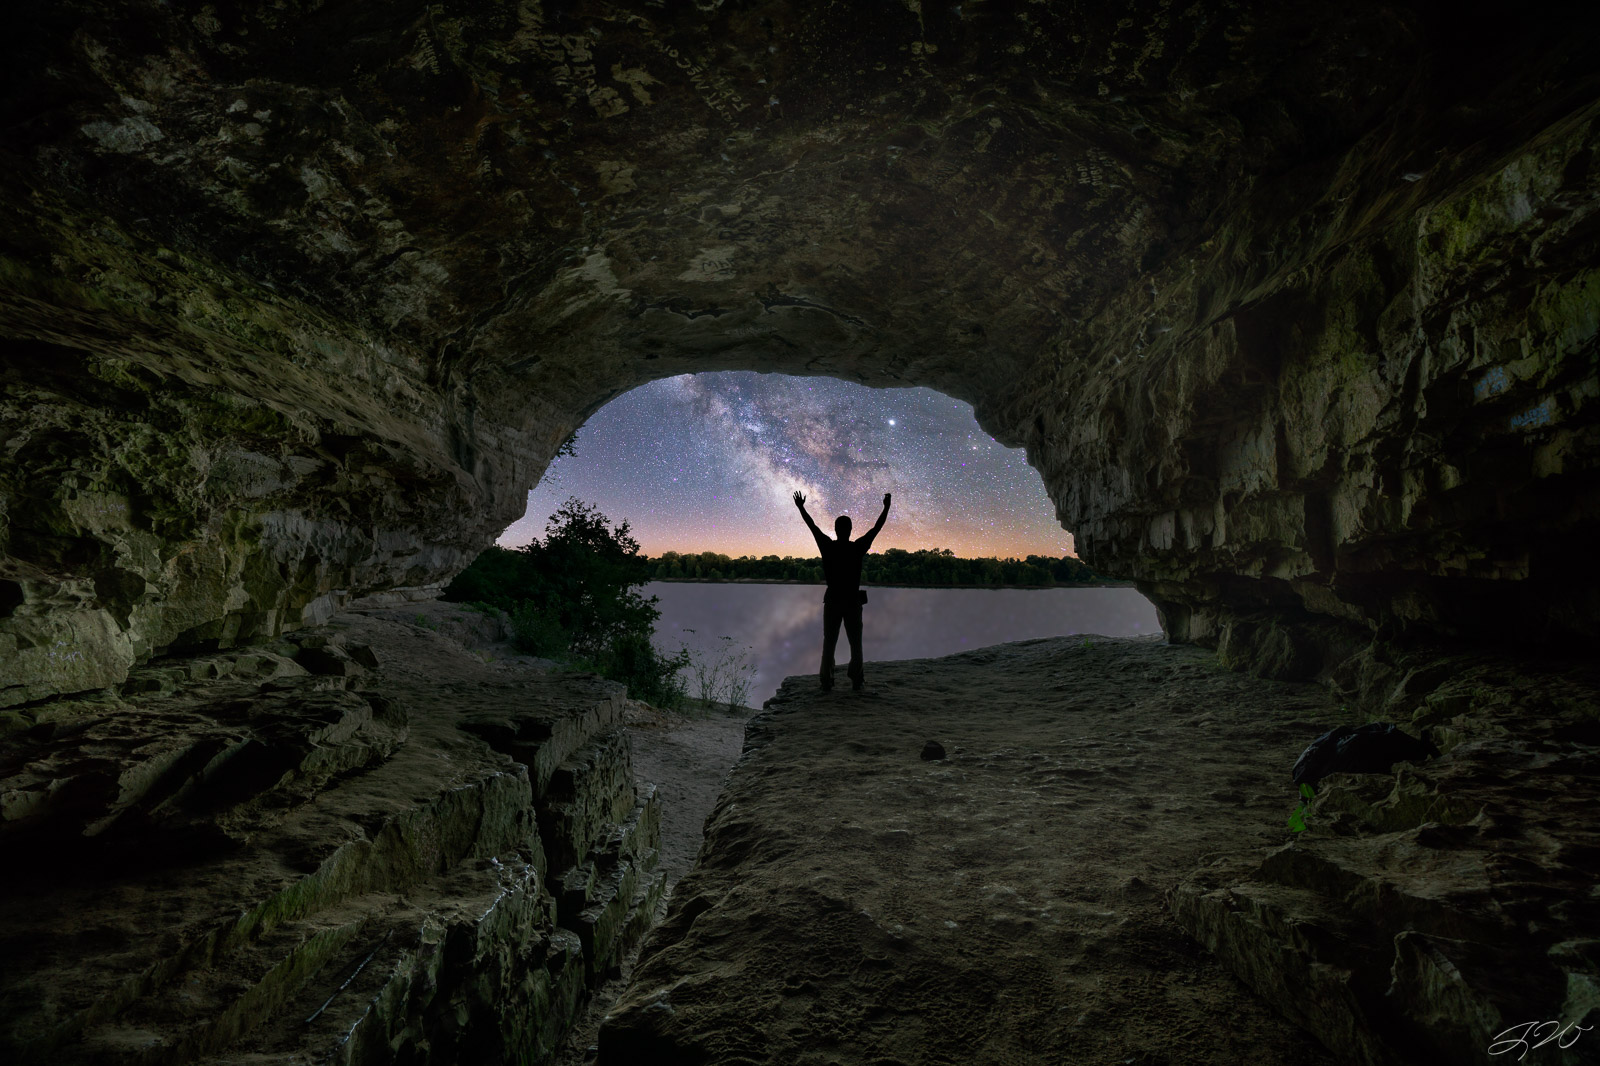 Cave in Rock, Illinois, Milky Way, Night Sky, Ohio River, Shawnee National Forest, Stars, light pollution, photo